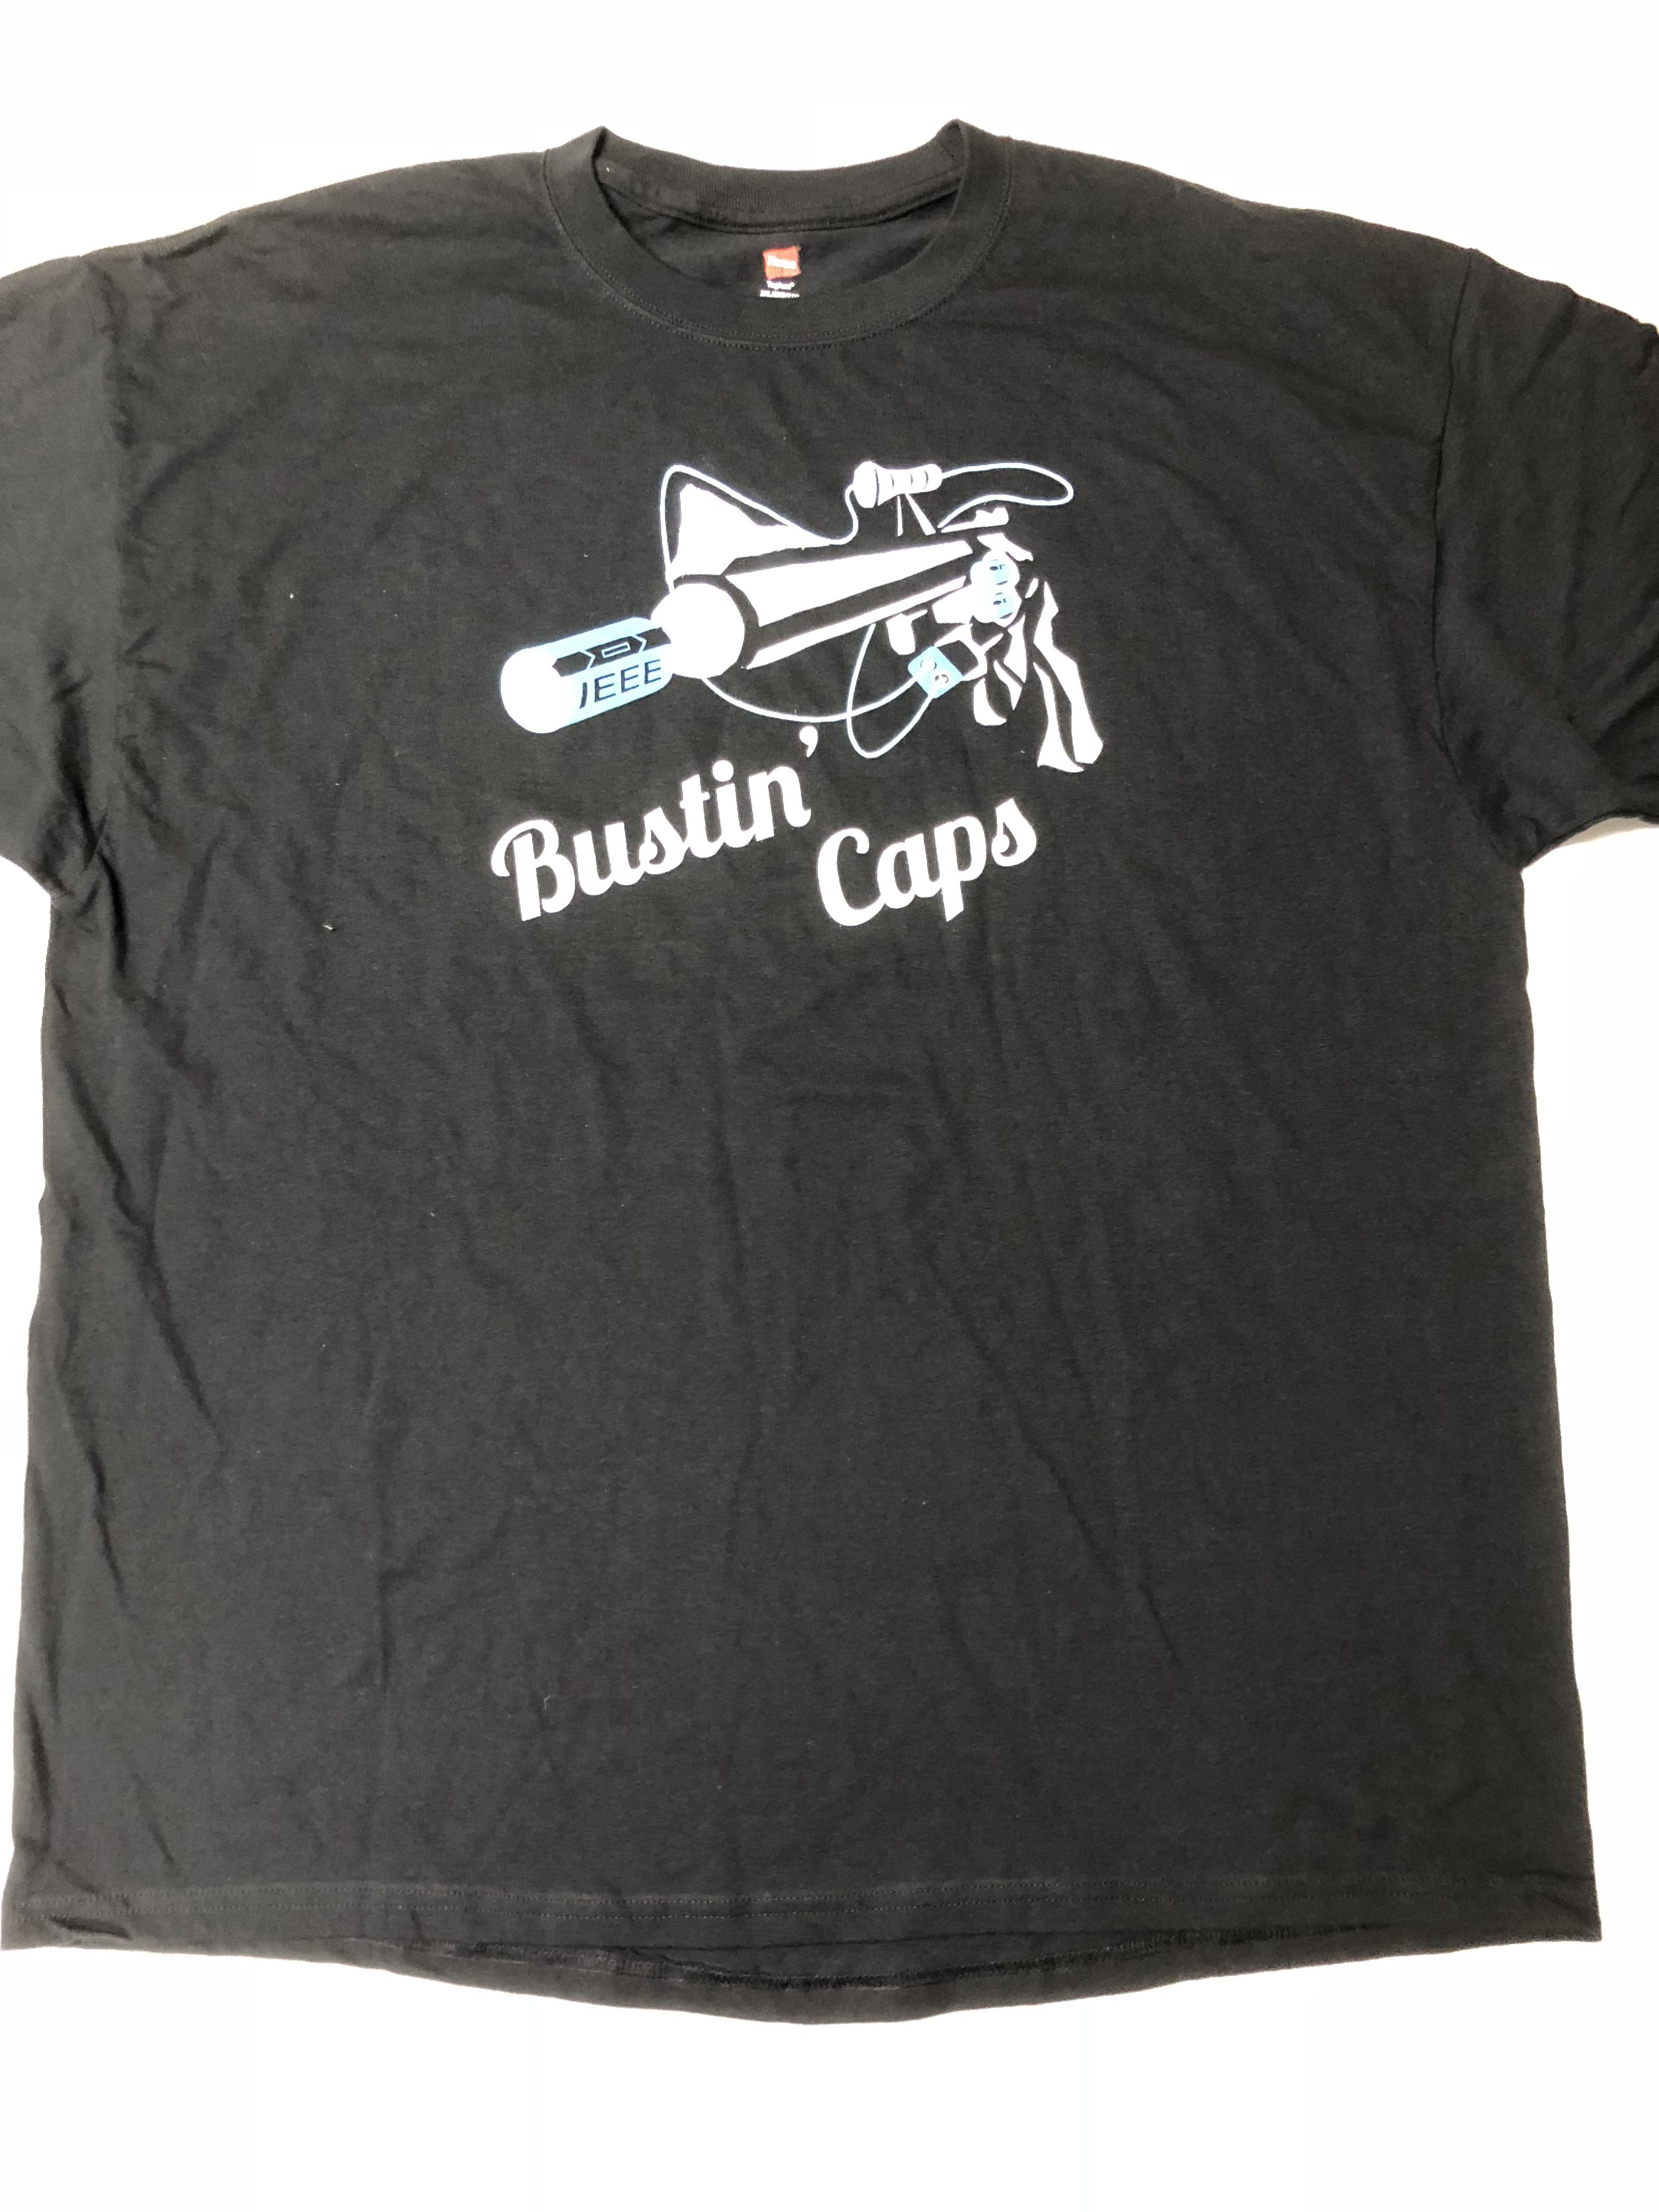 IEEE Bustin' Caps Shirt Front